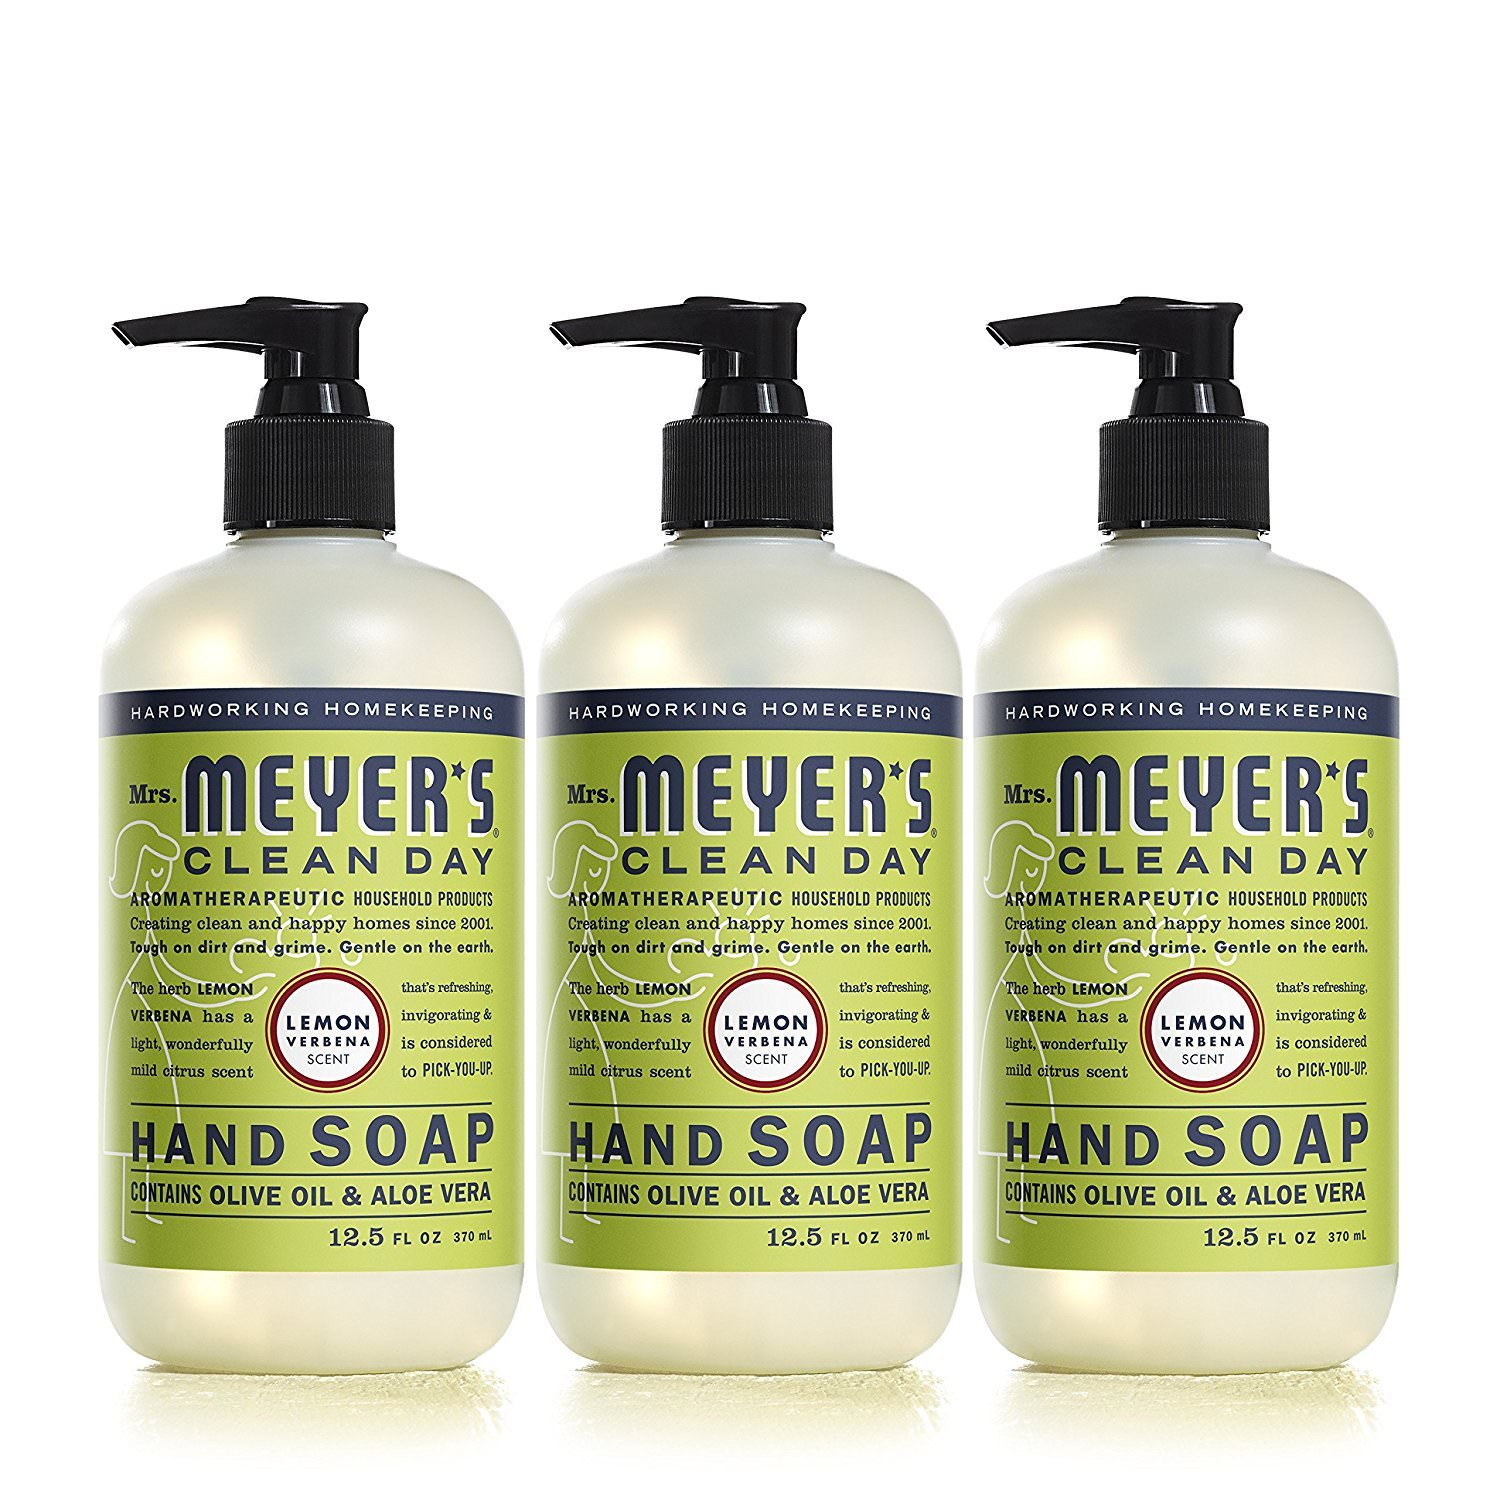 Mrs. Meyers Clean Day Hand Soap Lemon Verbena 12.5 fl oz, 3 Pack (Lemon Verbena) by Mrs. Meyer's Clean Day